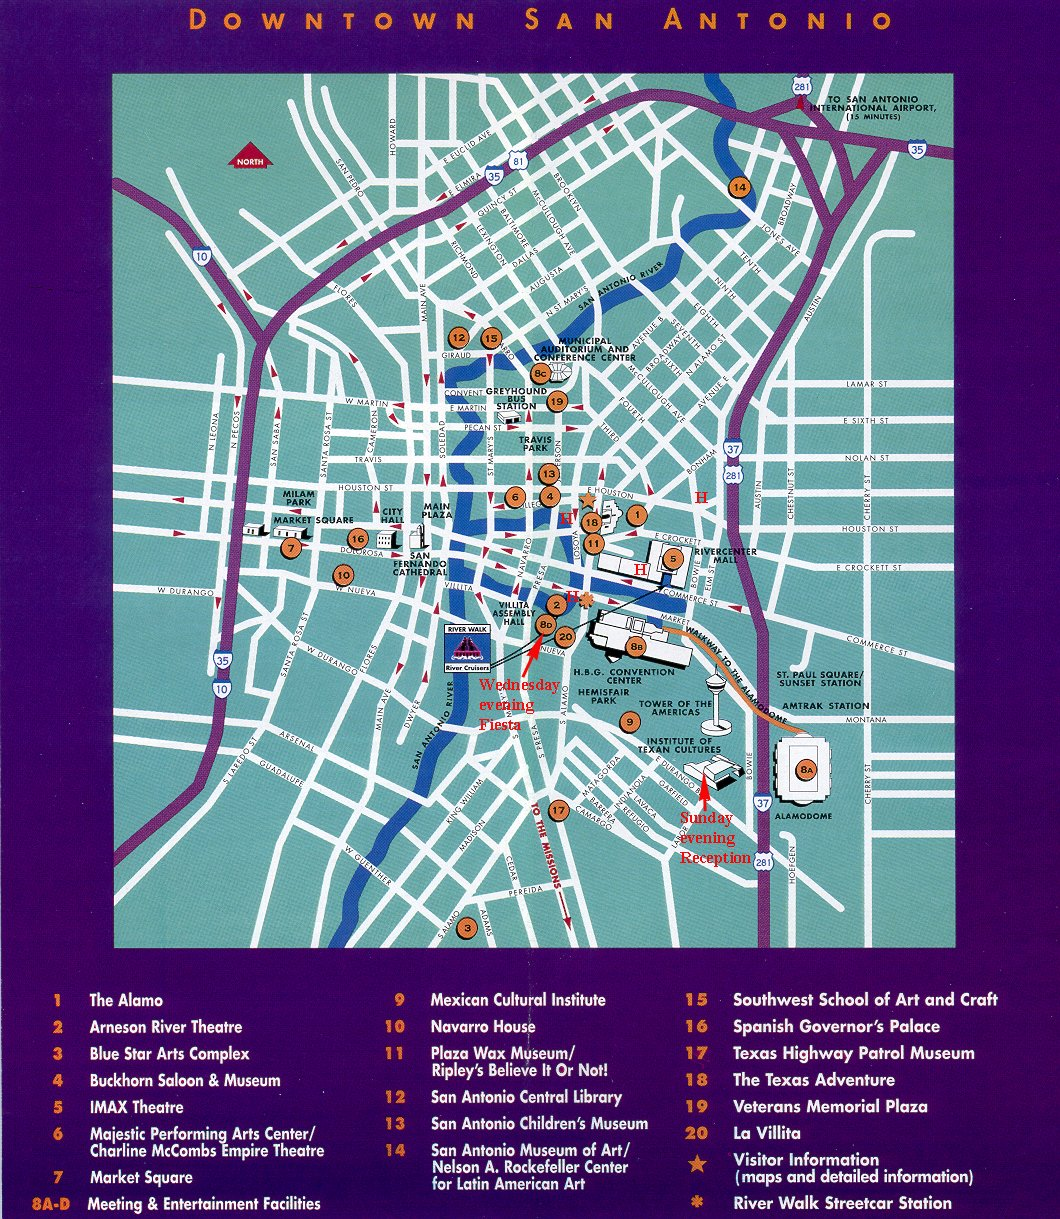 San Antonio Downtown Tourist map San Antonio TX mappery – San Antonio Tourist Attractions Map